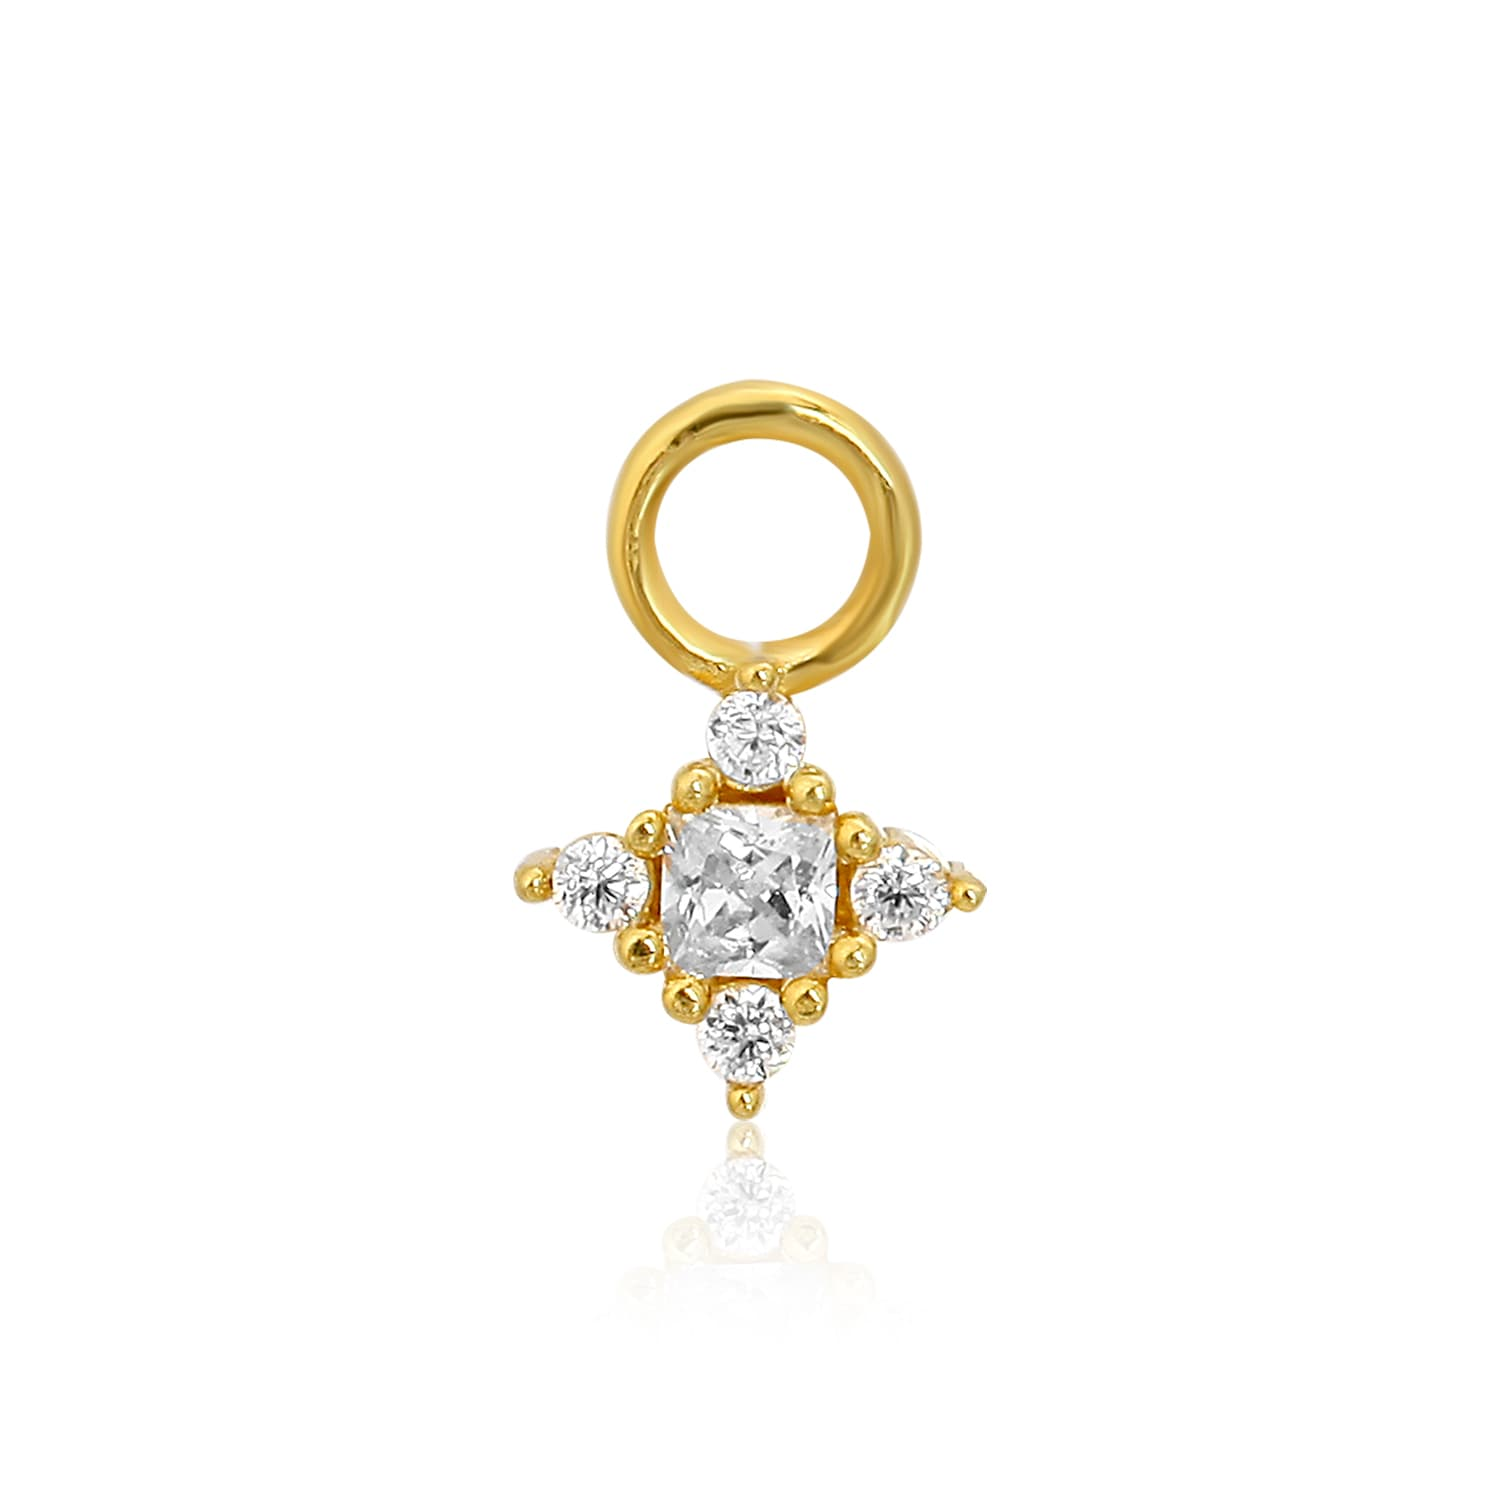 Gold plated charm models